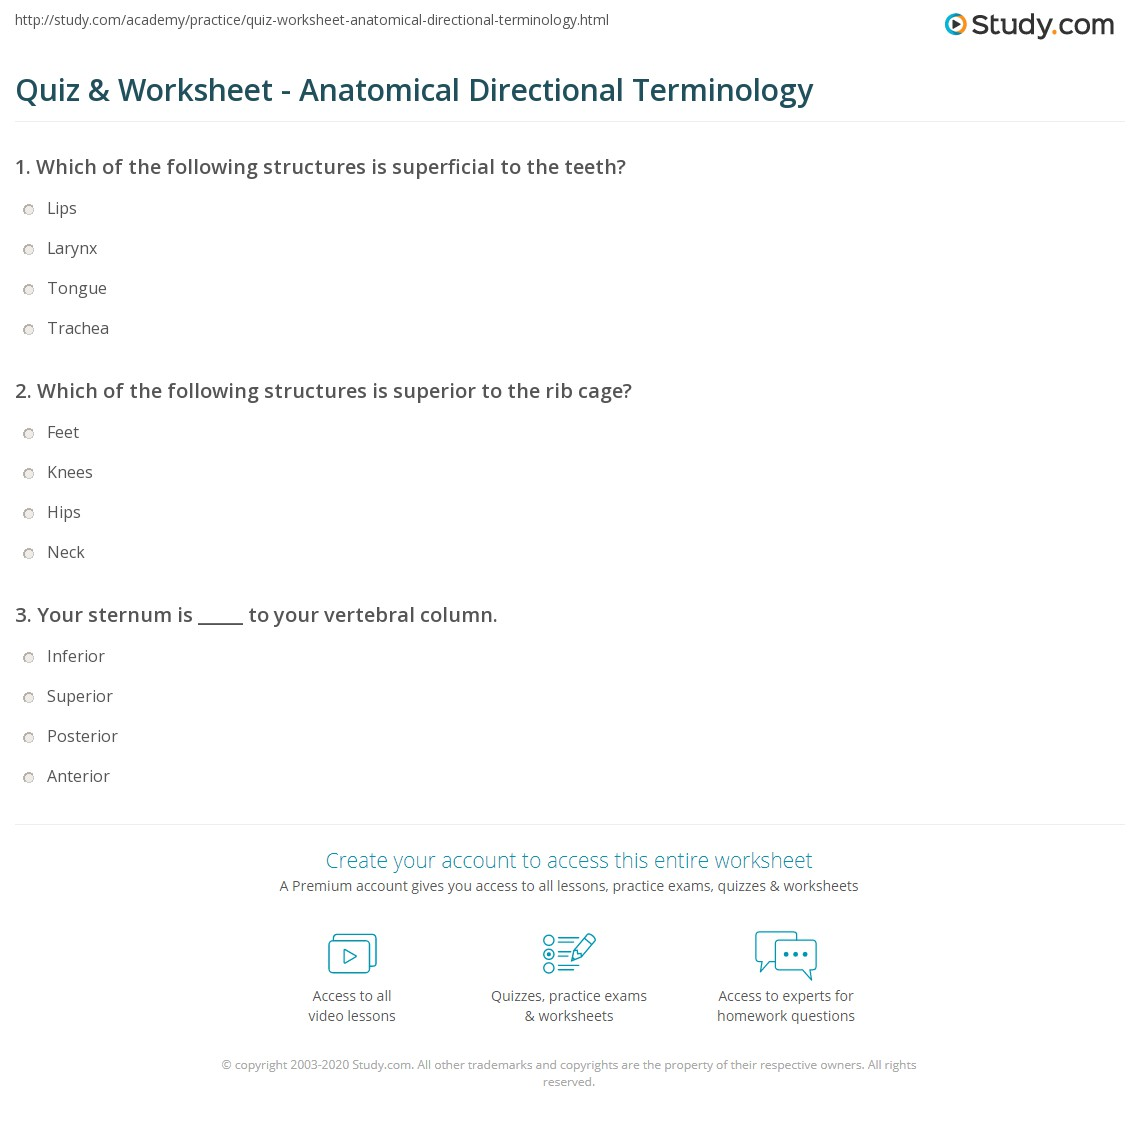 Quiz & Worksheet - Anatomical Directional Terminology | Study.com